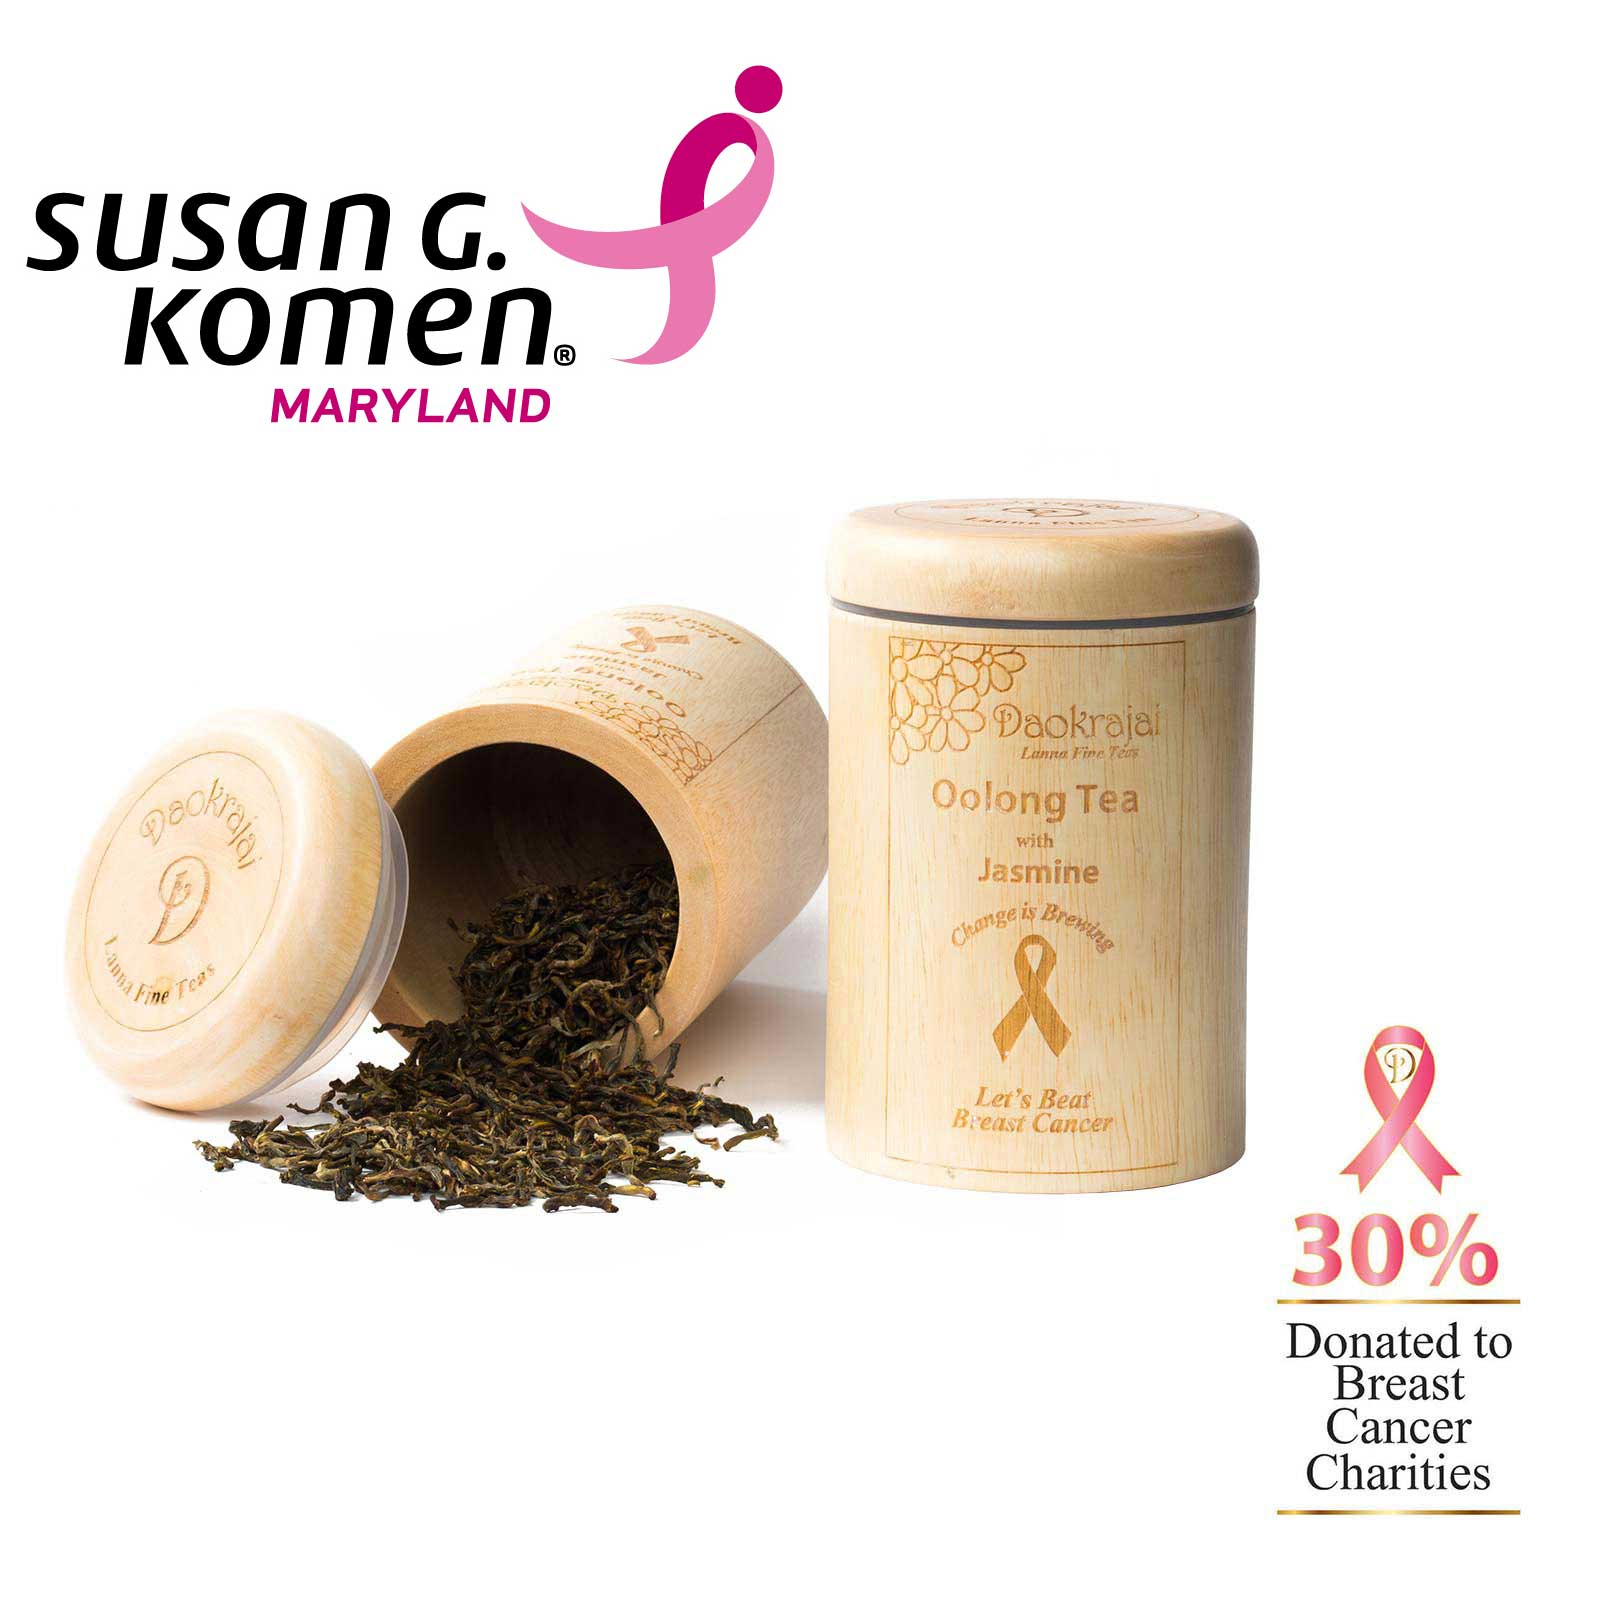 Oolong Tea Jasmine - supporting The Susan G. Komen Maryland breast cancer charity